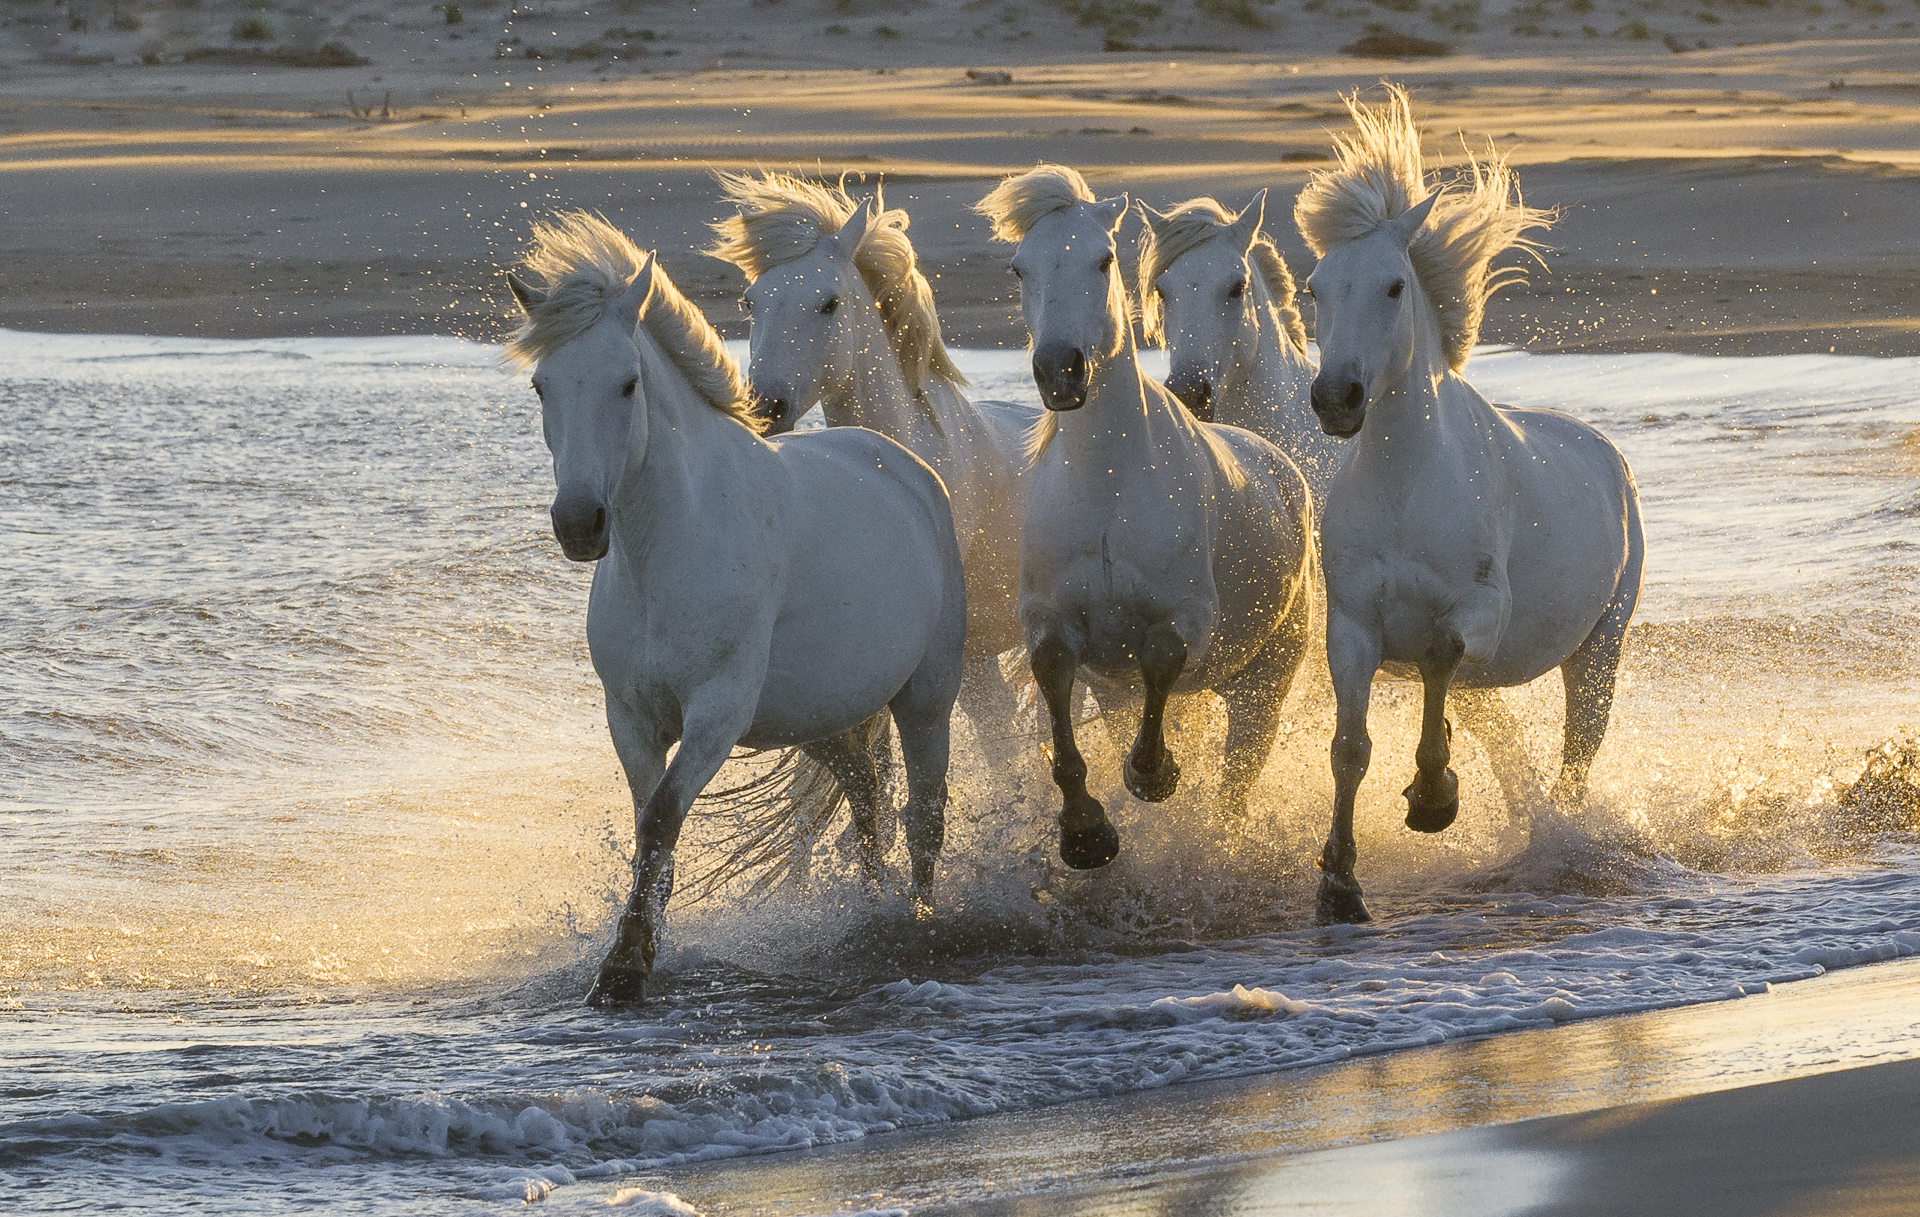 Camargue horses running on a Mediterranean beach. Parc naturel régional de Camargue. France.